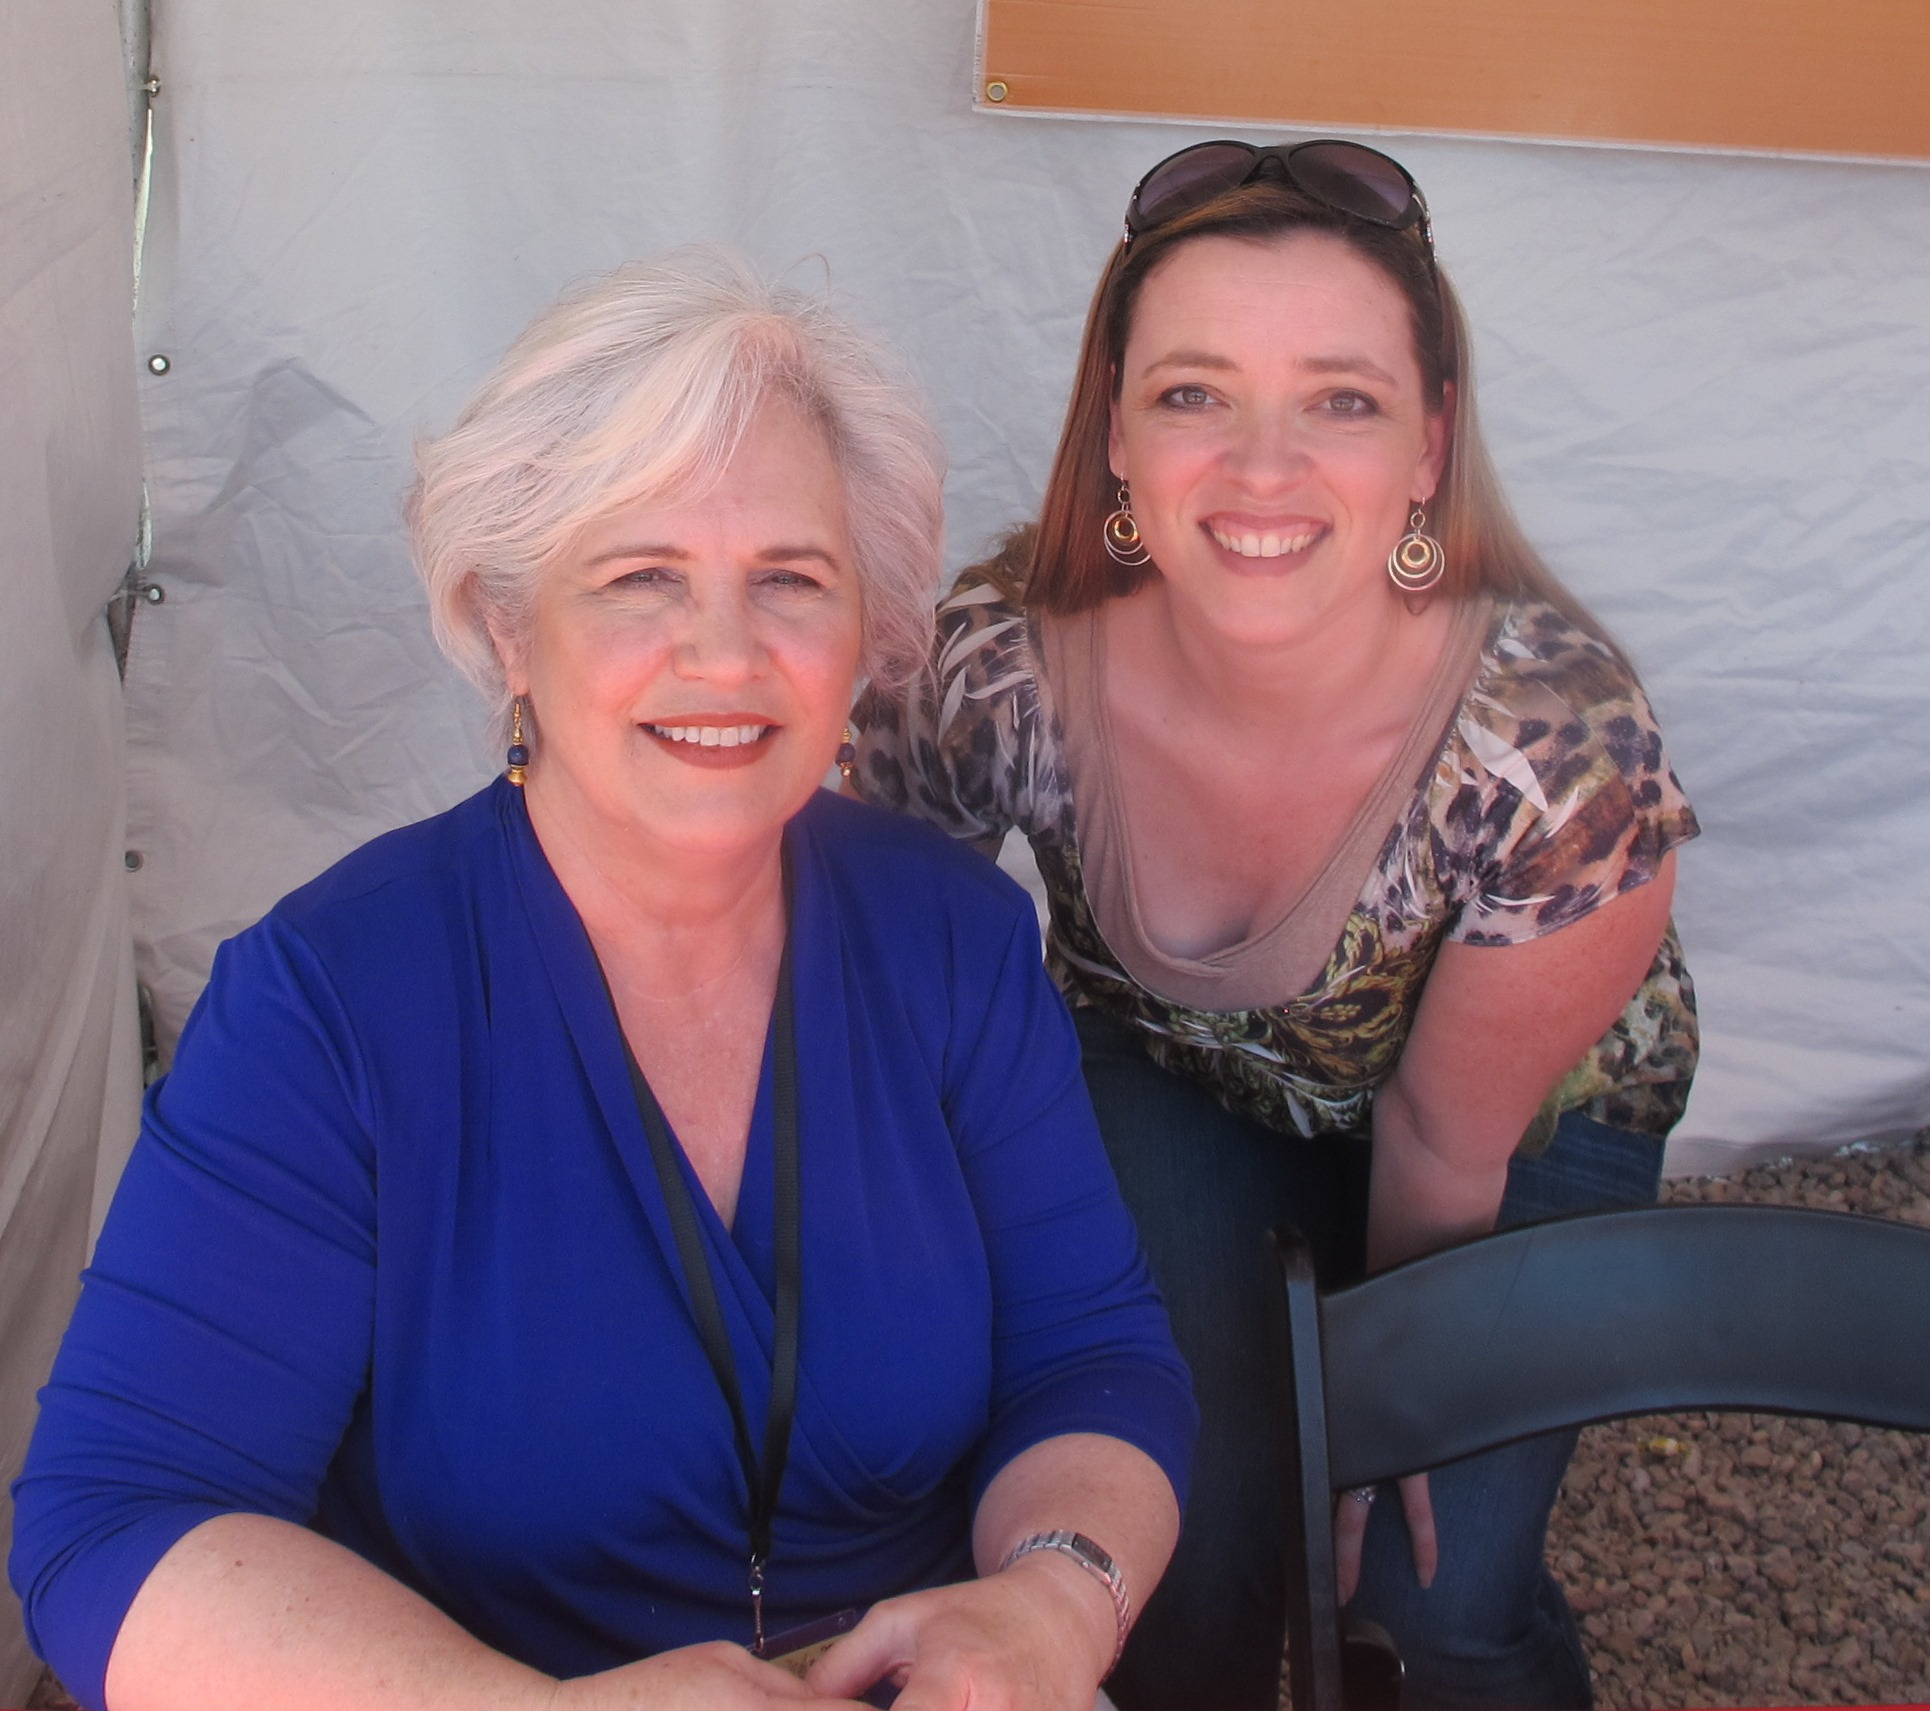 Nancy Turner and me! Yay!